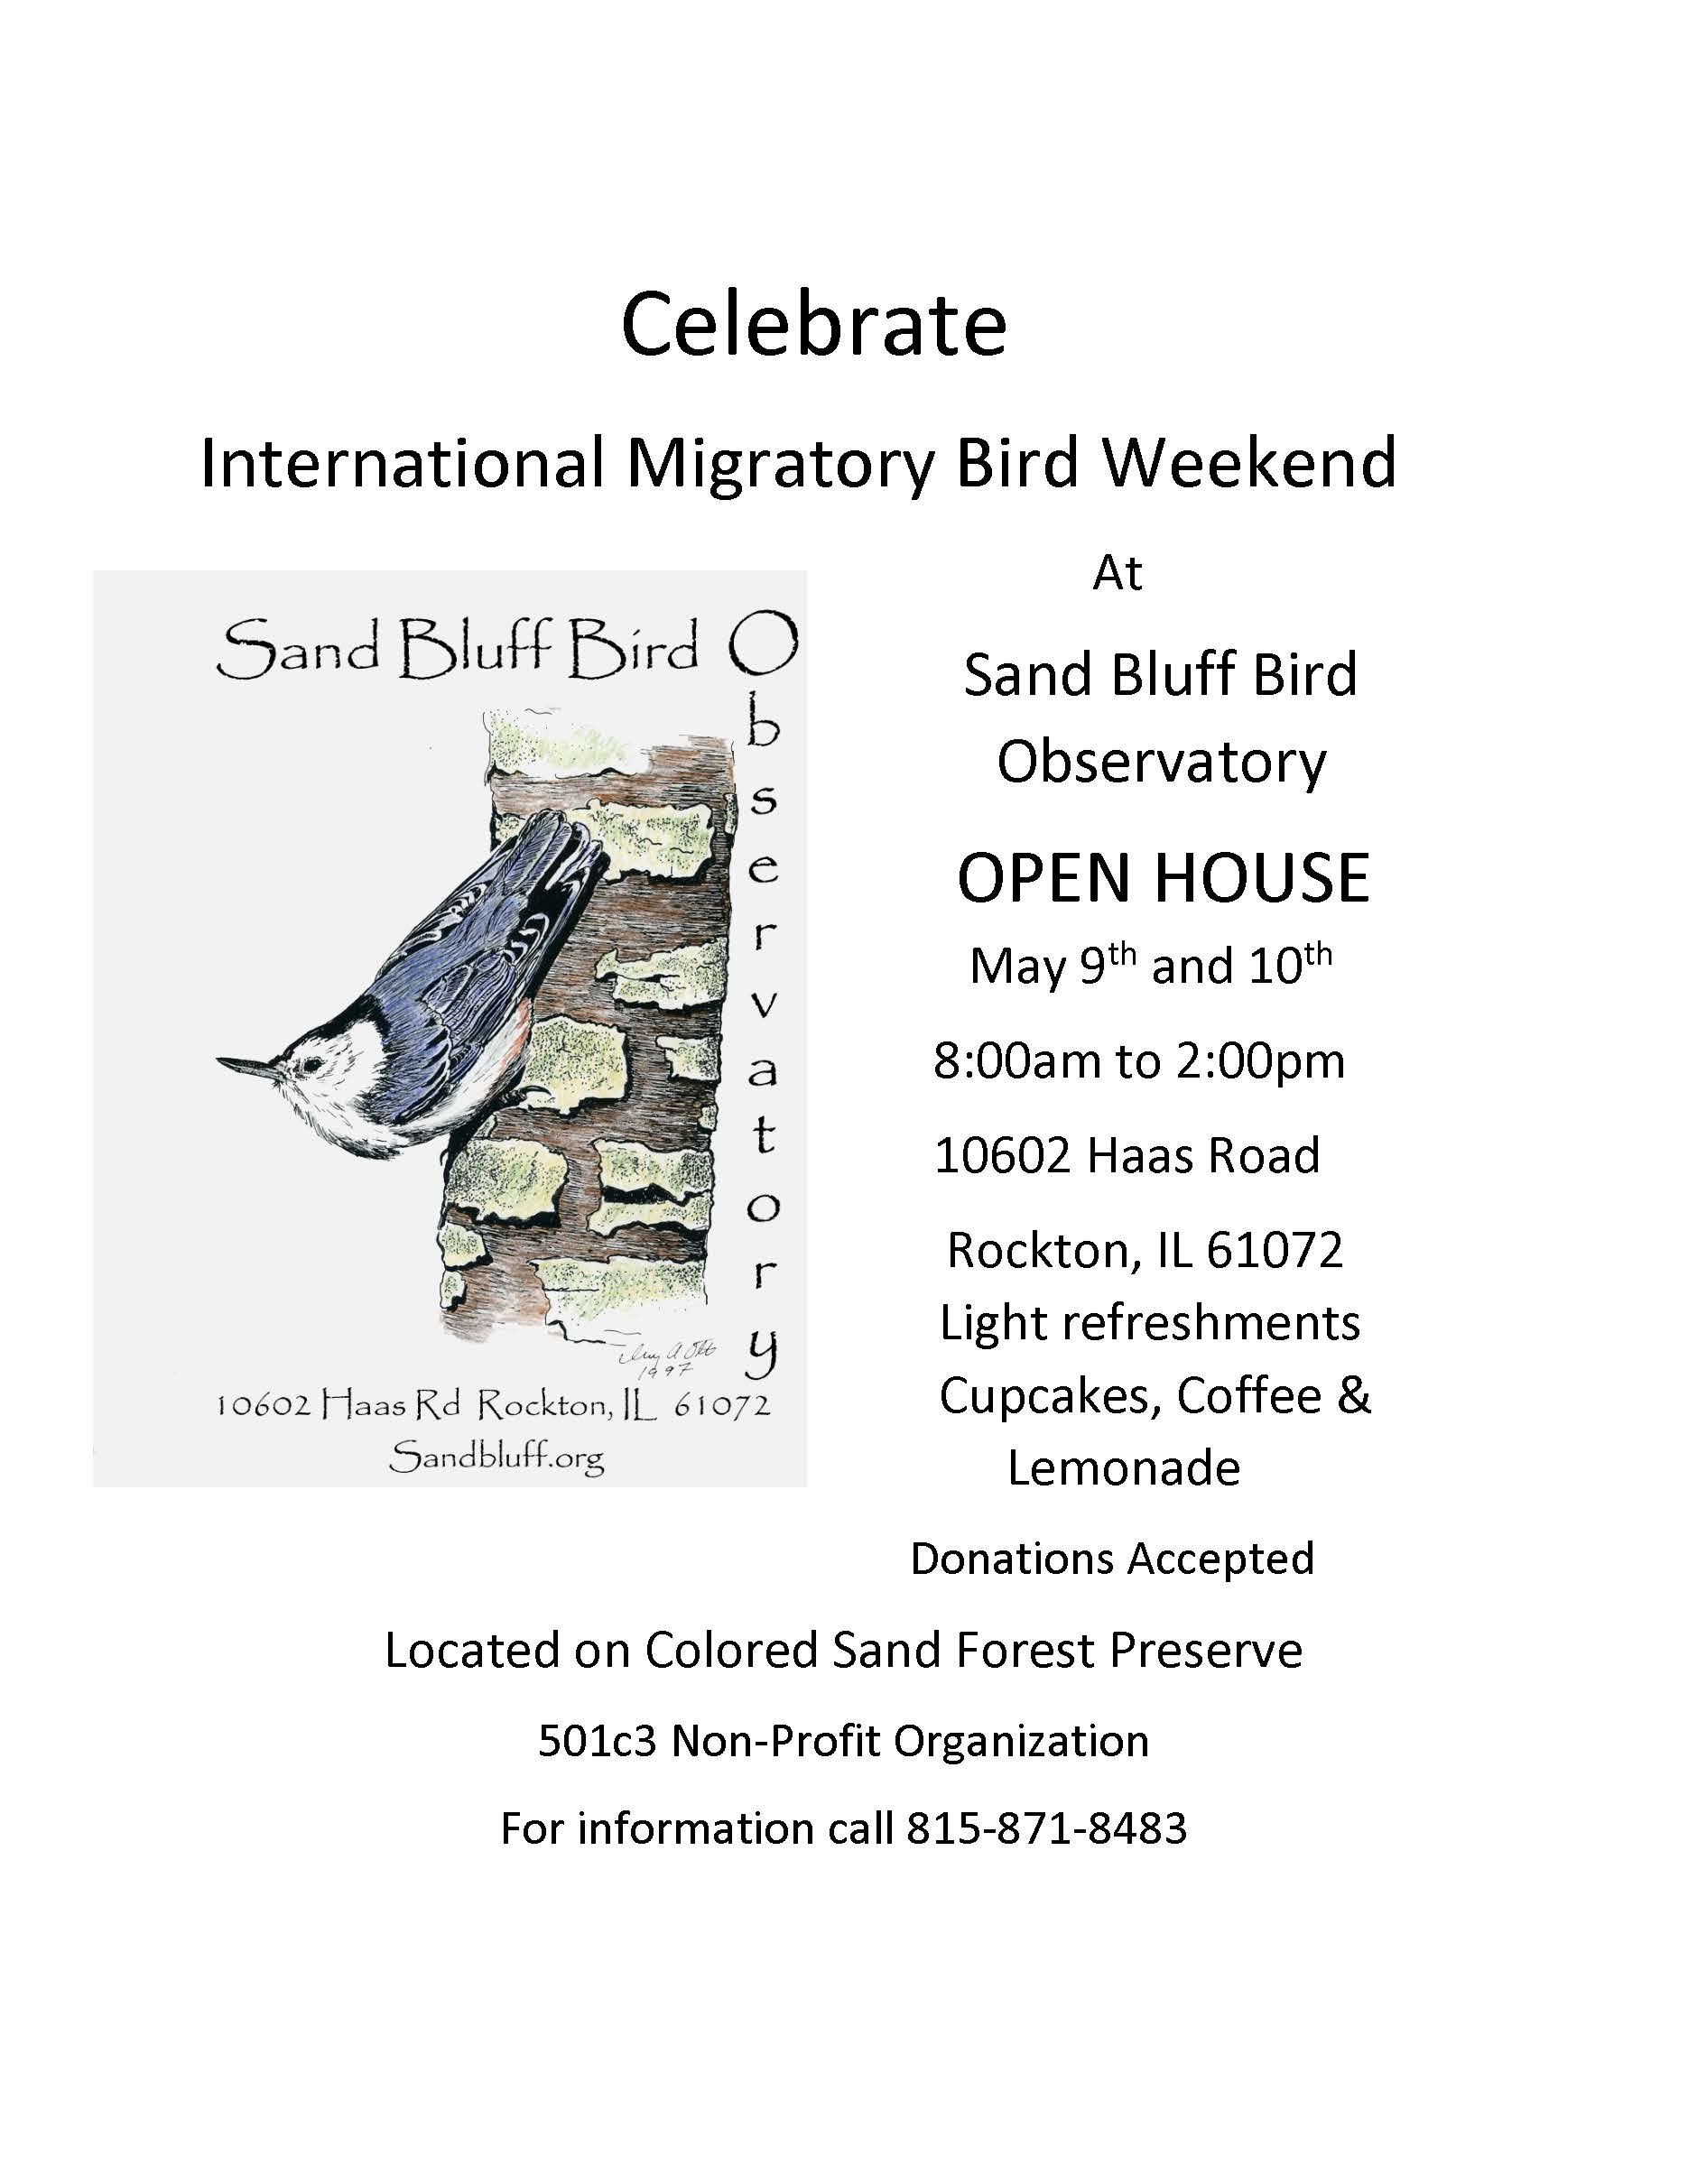 International-Migratory-Bird-Weekend